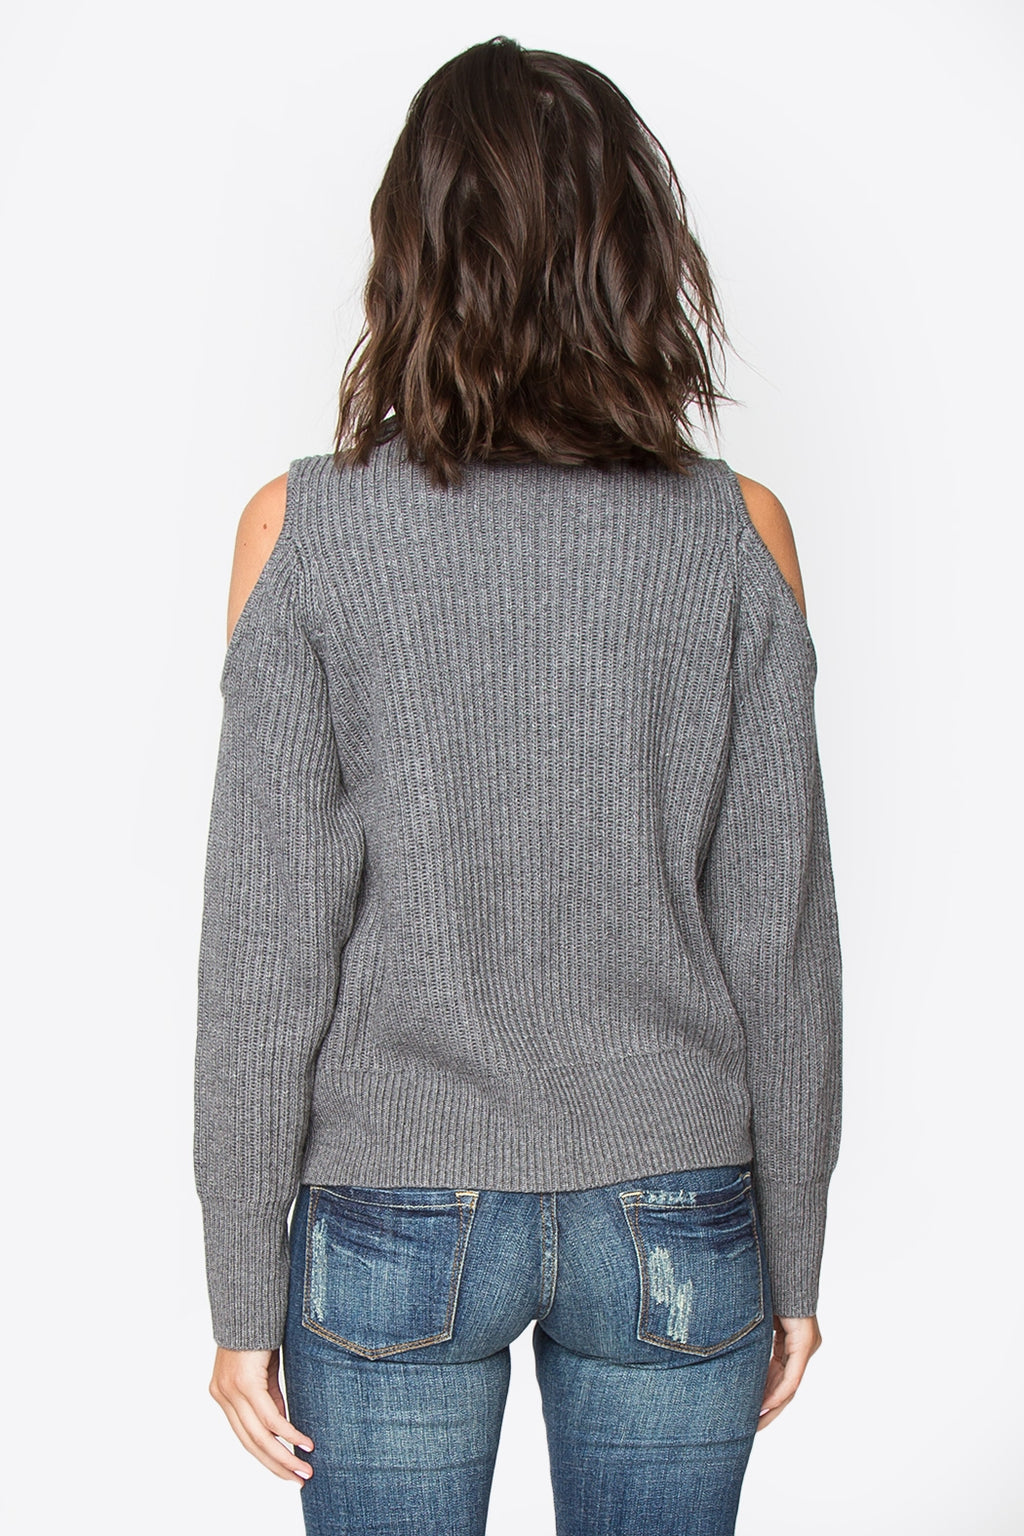 Griffin Cold Shoulder Turtle Neck Sweater - Grey